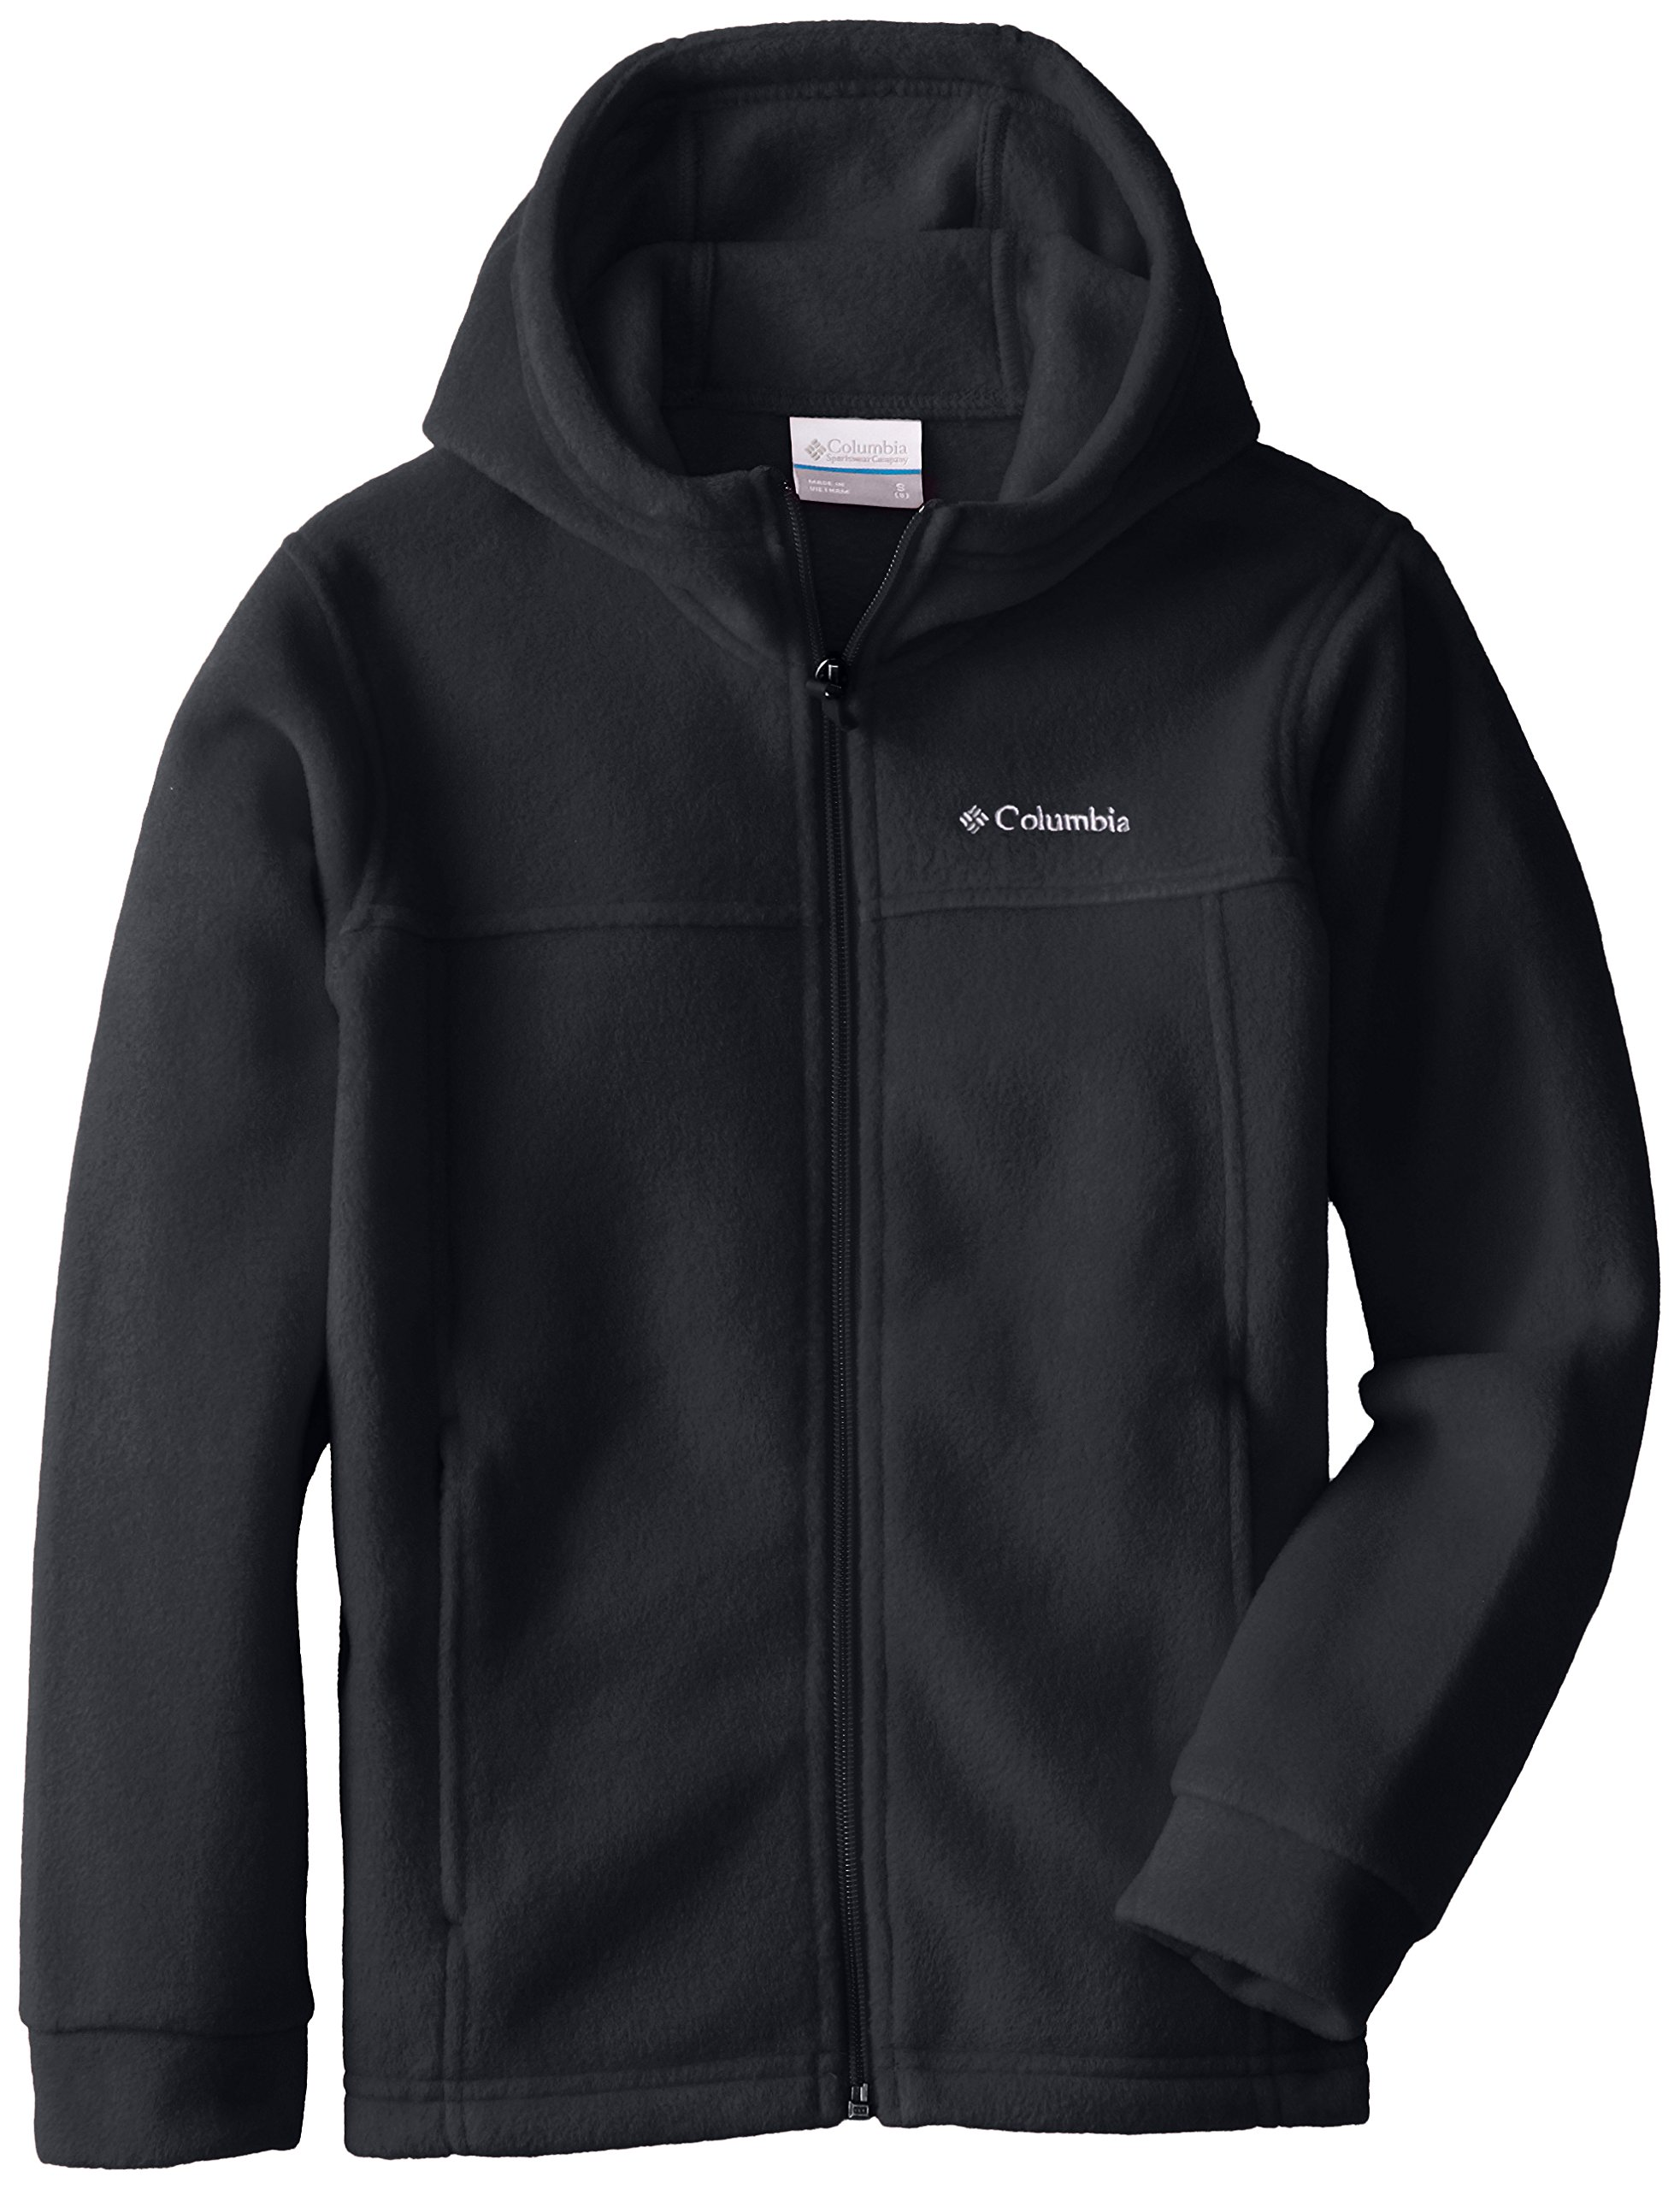 Columbia Big Boys' Steens II Fleece Hoodie, Black, Medium (10/12) by Columbia